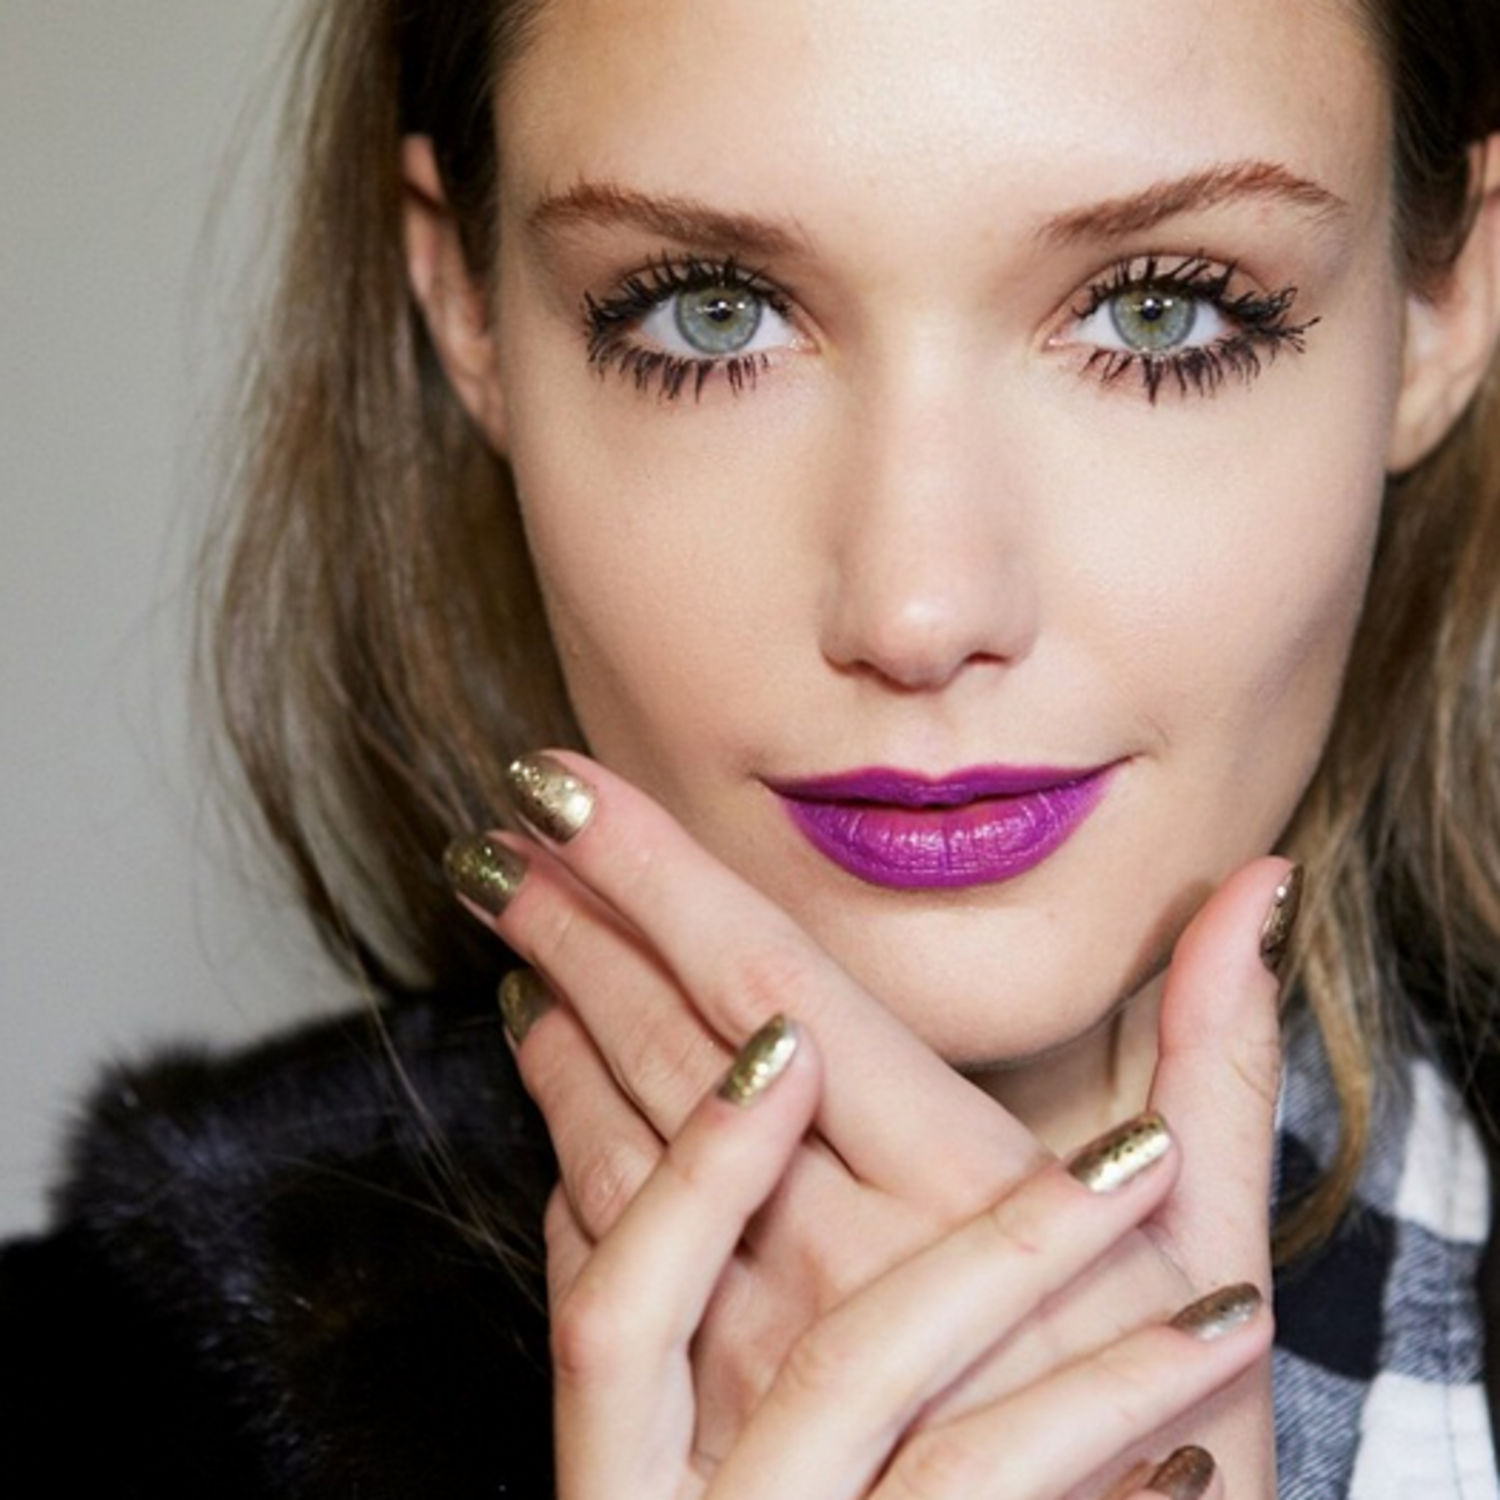 Are Spider Lashes the New Trend? | The Fashion Foot